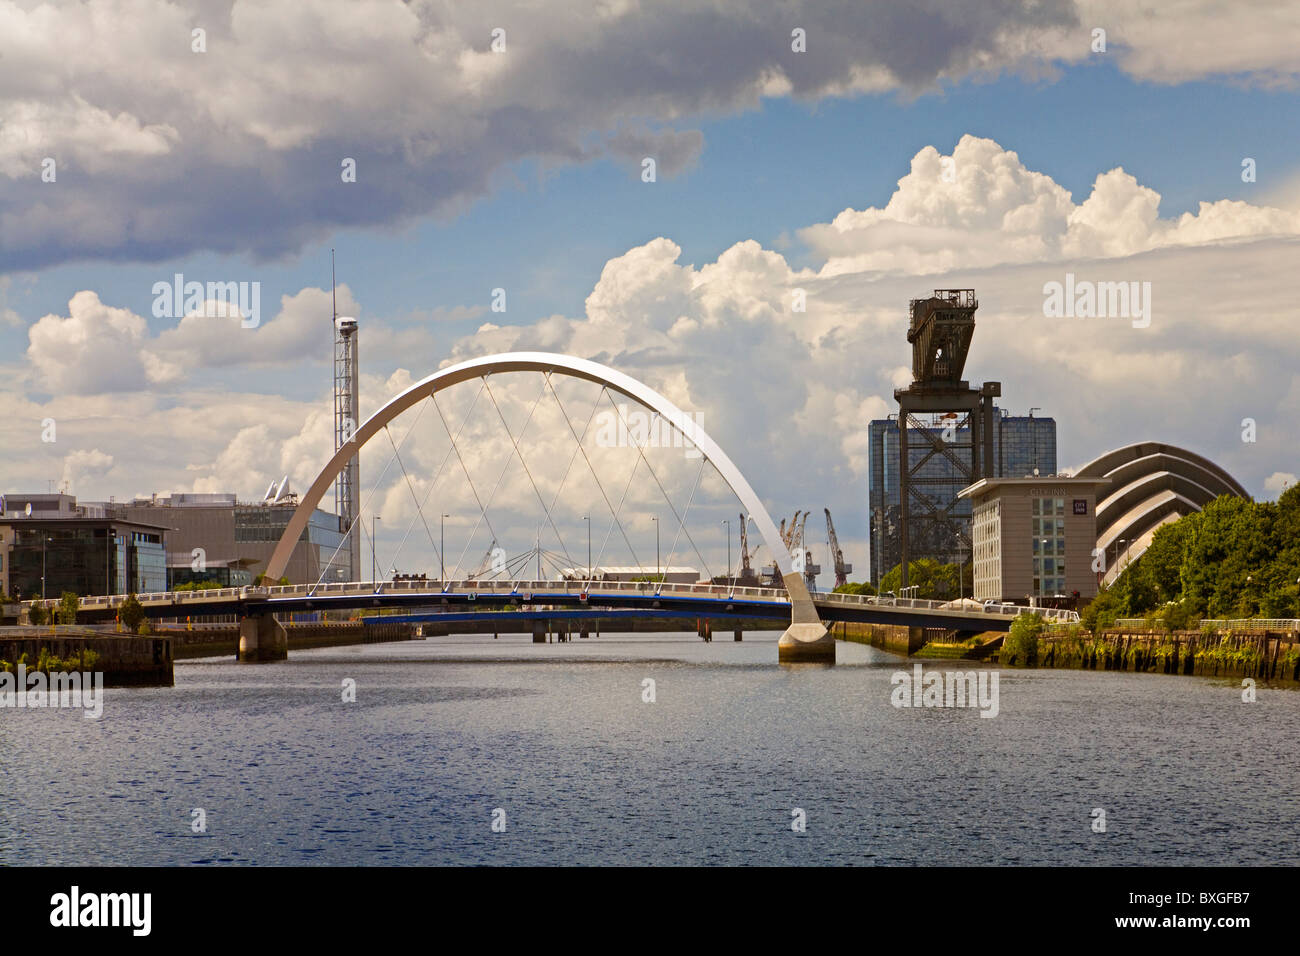 The Clyde Arc (Squinty Bridge), Glasgow - Stock Image